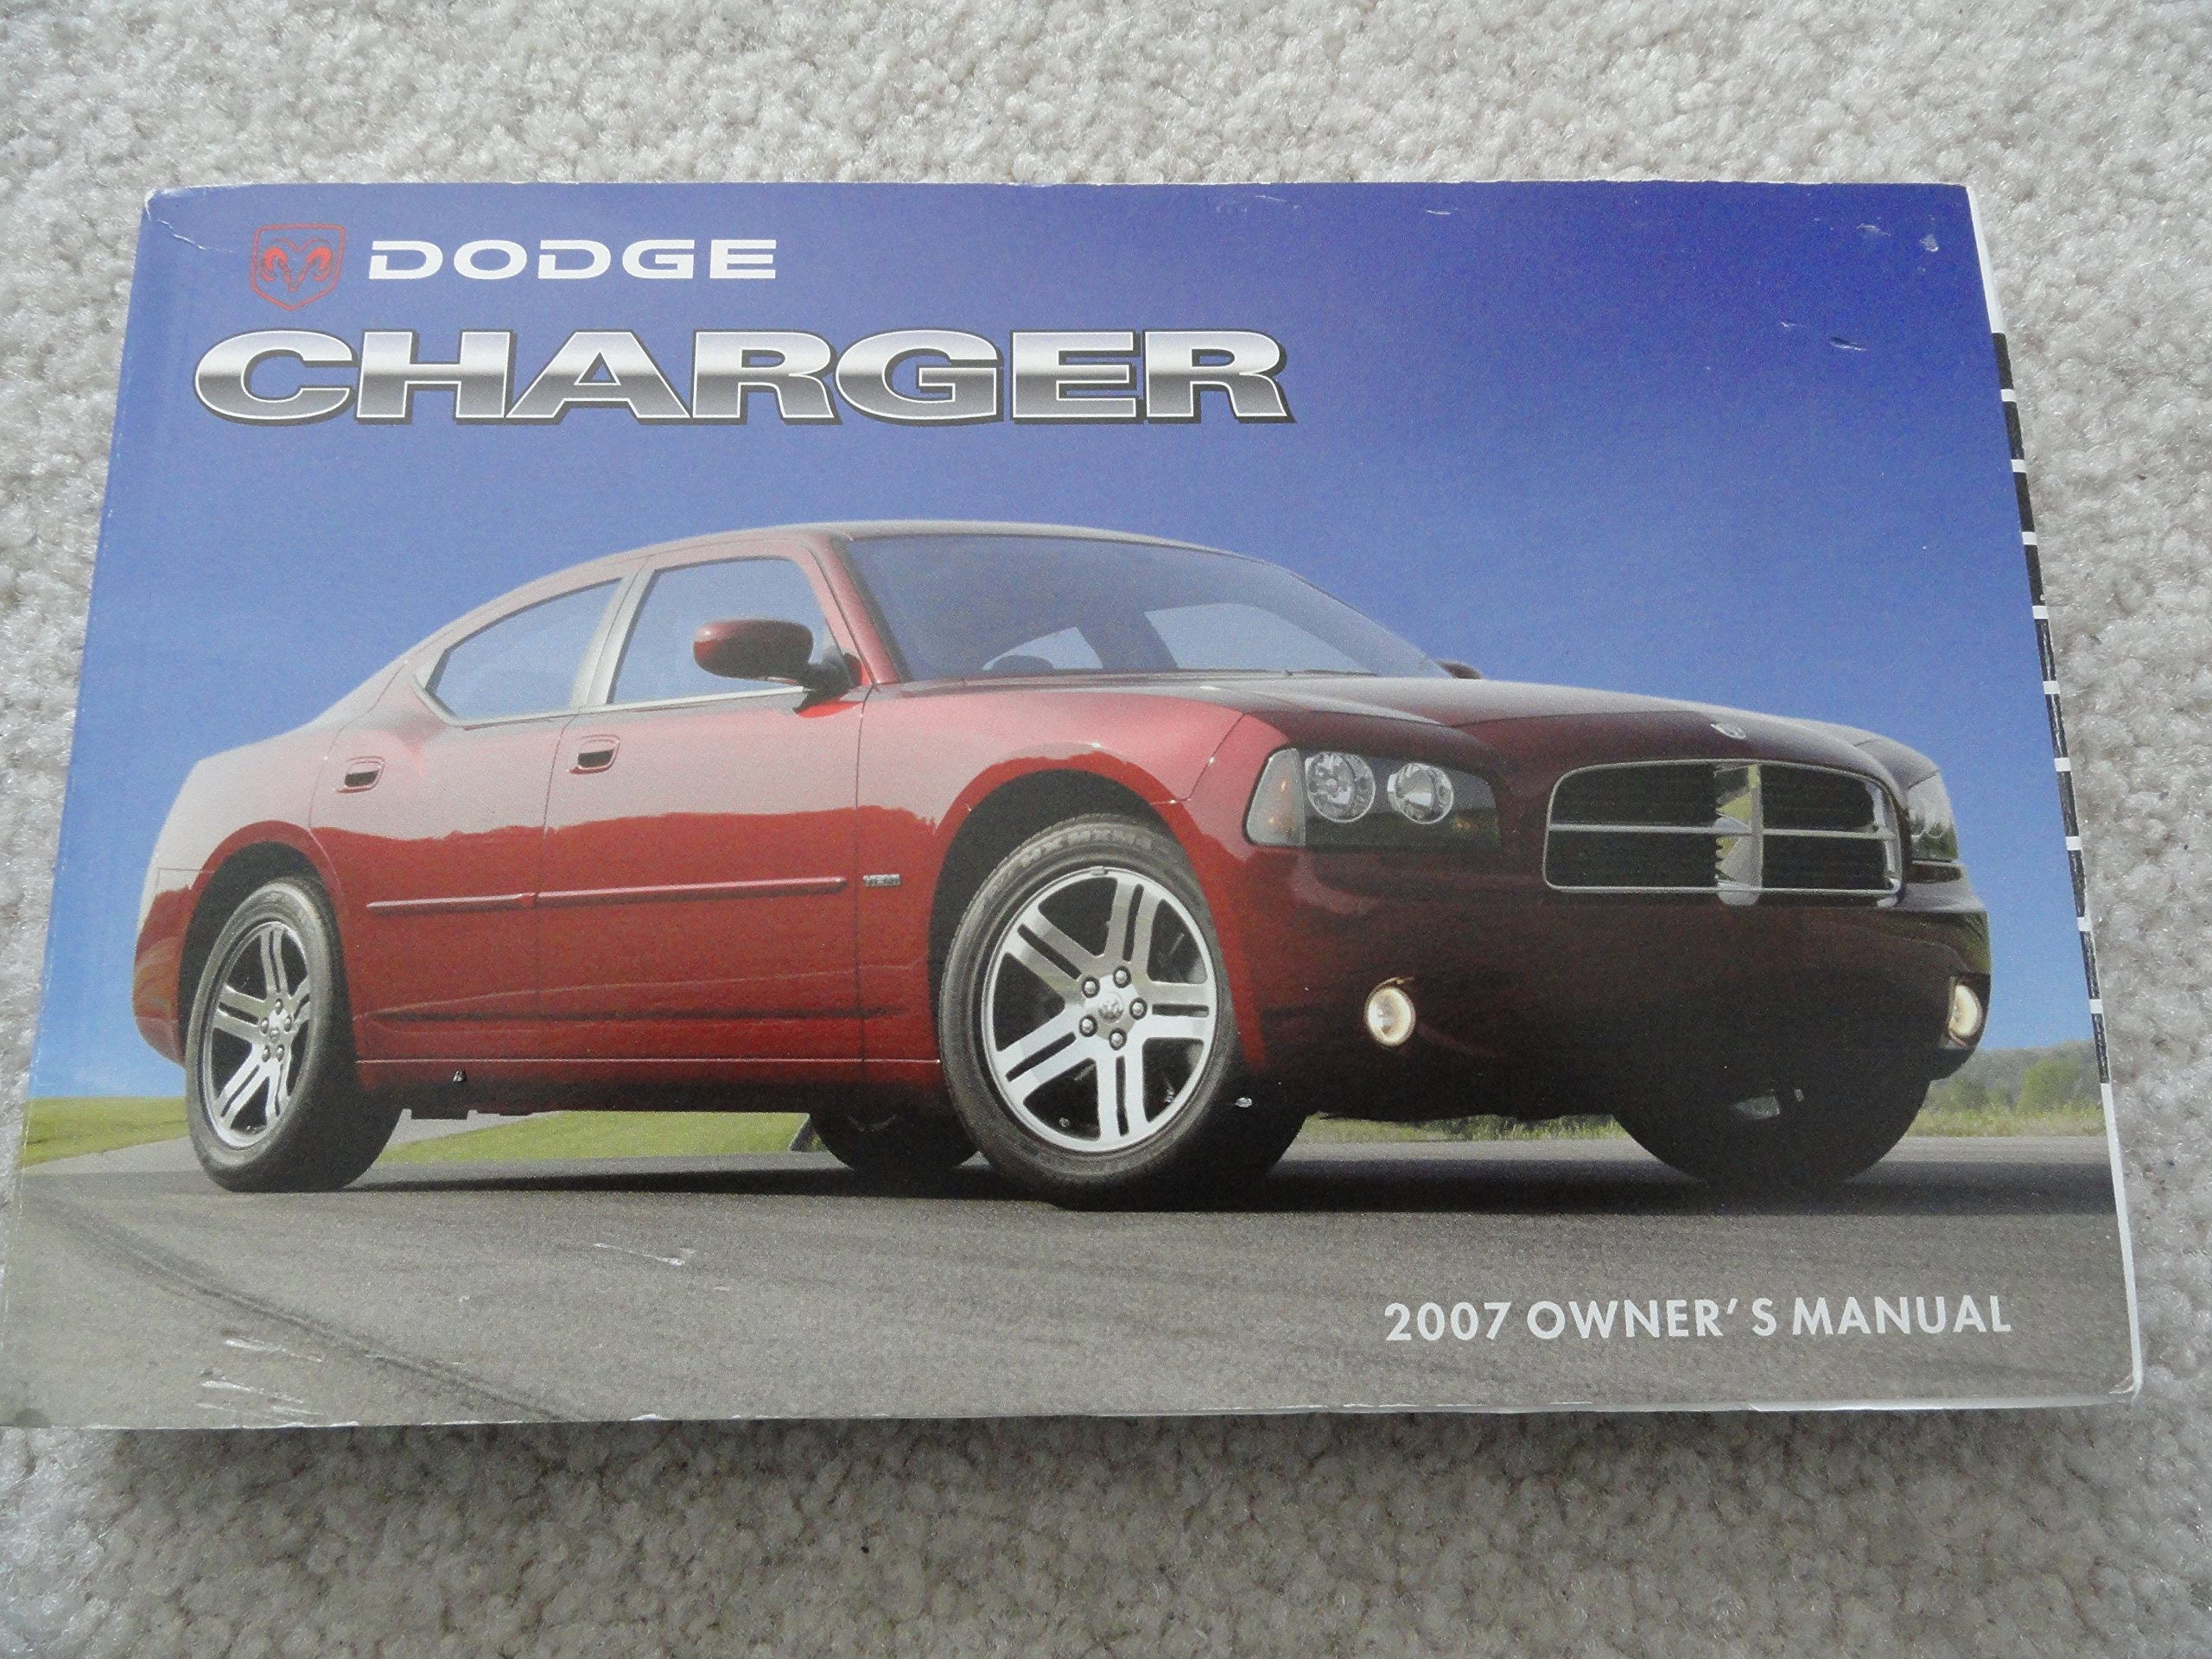 2007 dodge charger owners manual dodge amazon com books rh amazon com 2007 Dodge Charger Manual Interior 2007 Dodge Charger Manual Book